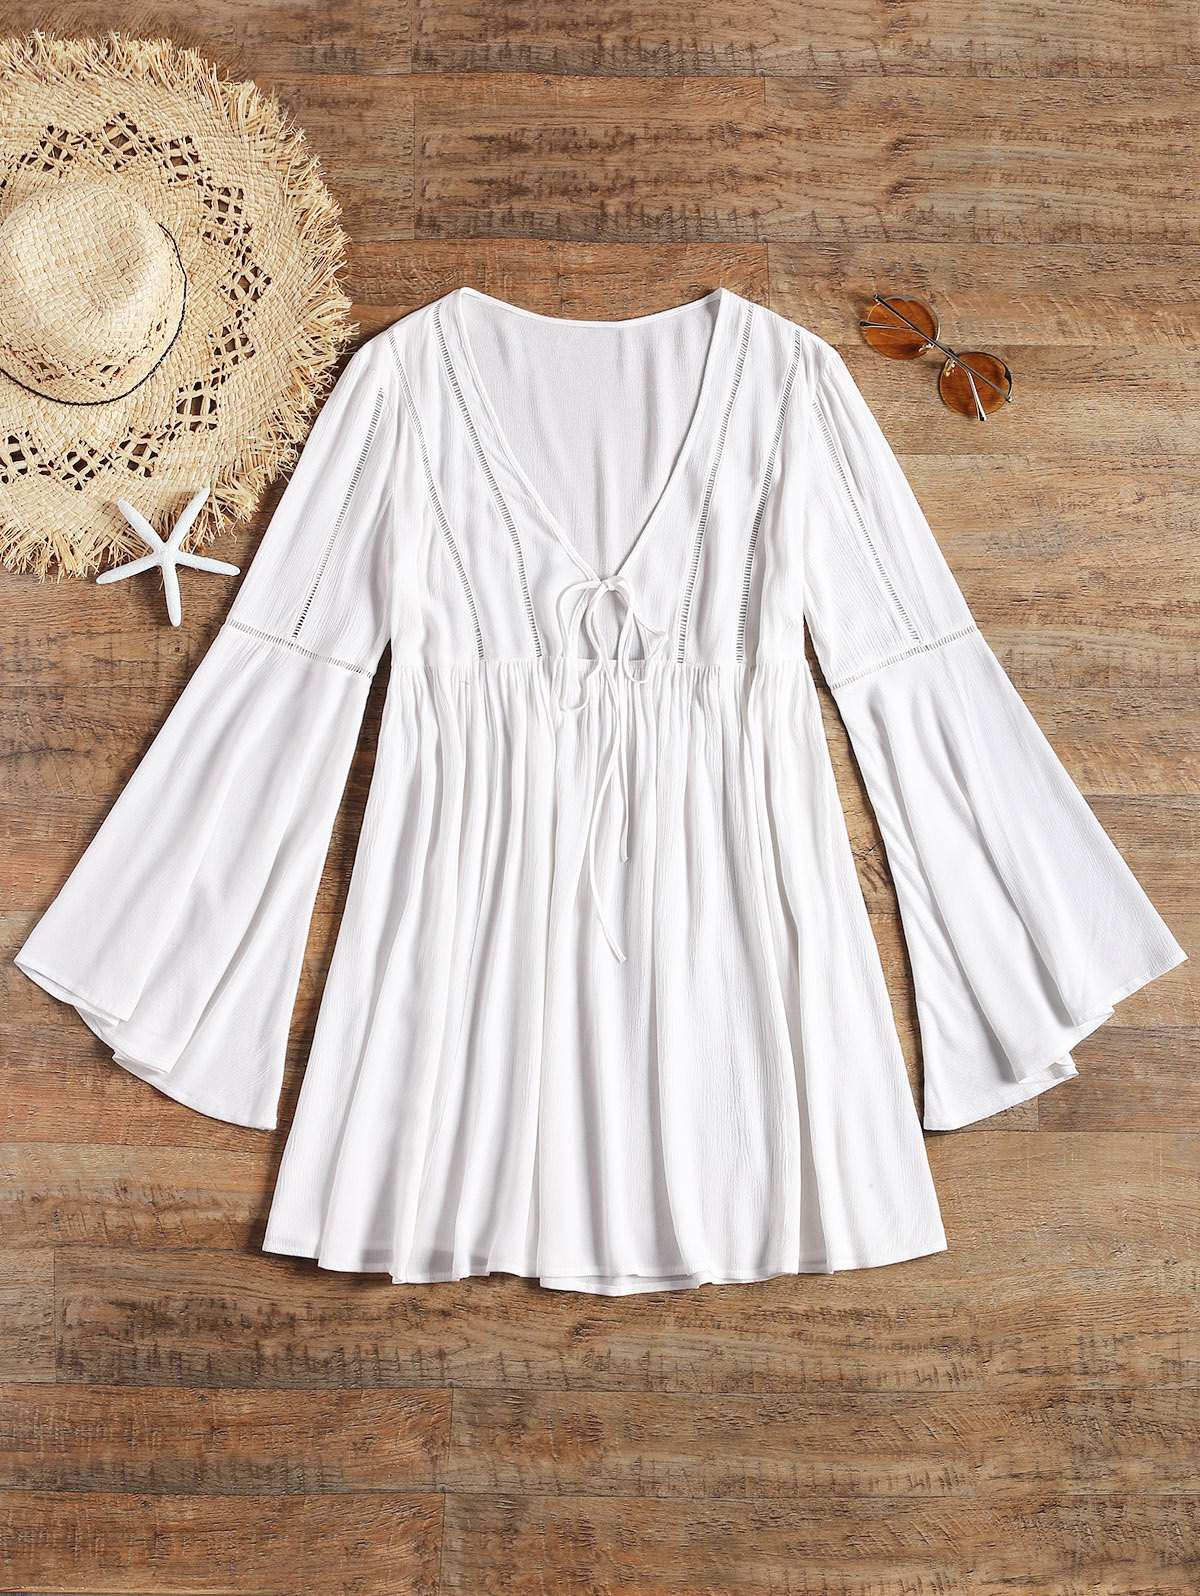 V Neck Flare Sleeve Cover Up Dress - WHITE S